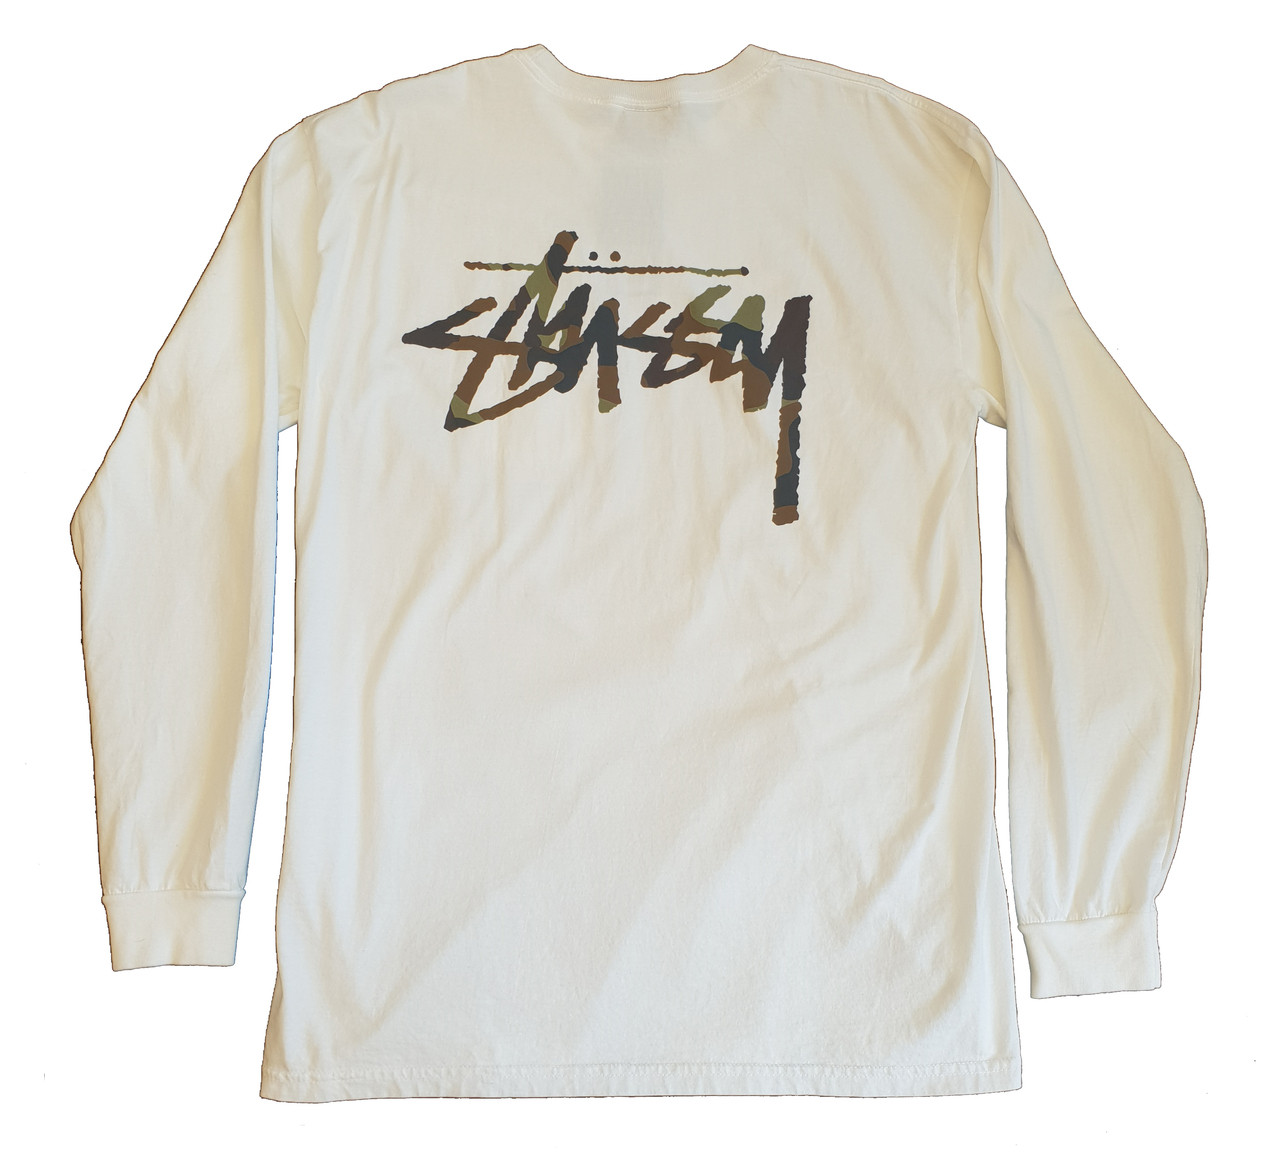 dc98d720 Stussy Camo Stock Pigment Dyed Pocket Tee - Natural. Your Price: £44.95  (You save £27.00). Image 1